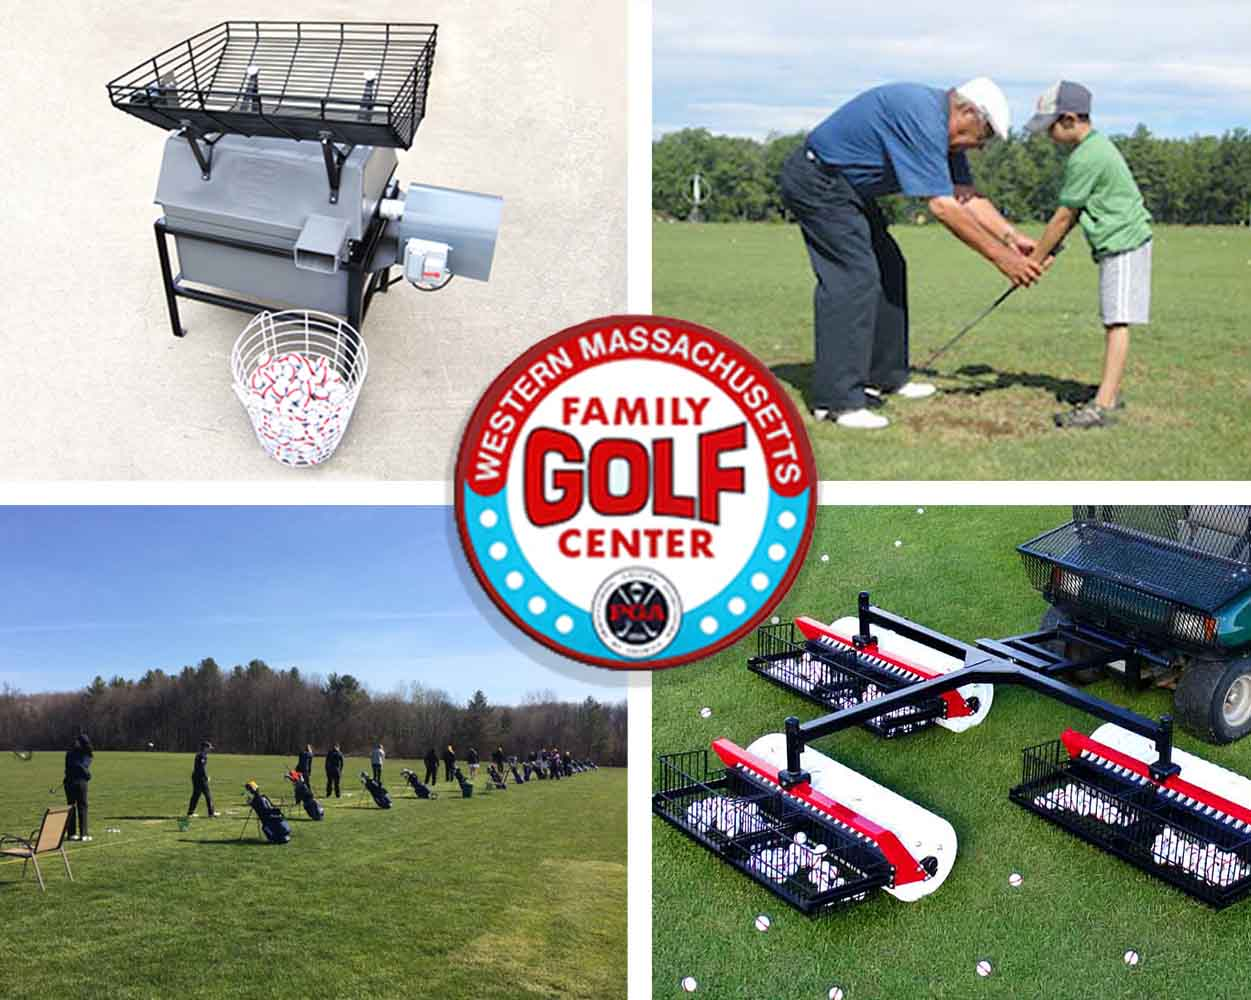 We use our own Golf Driving Range Equipment on our own Driving Range